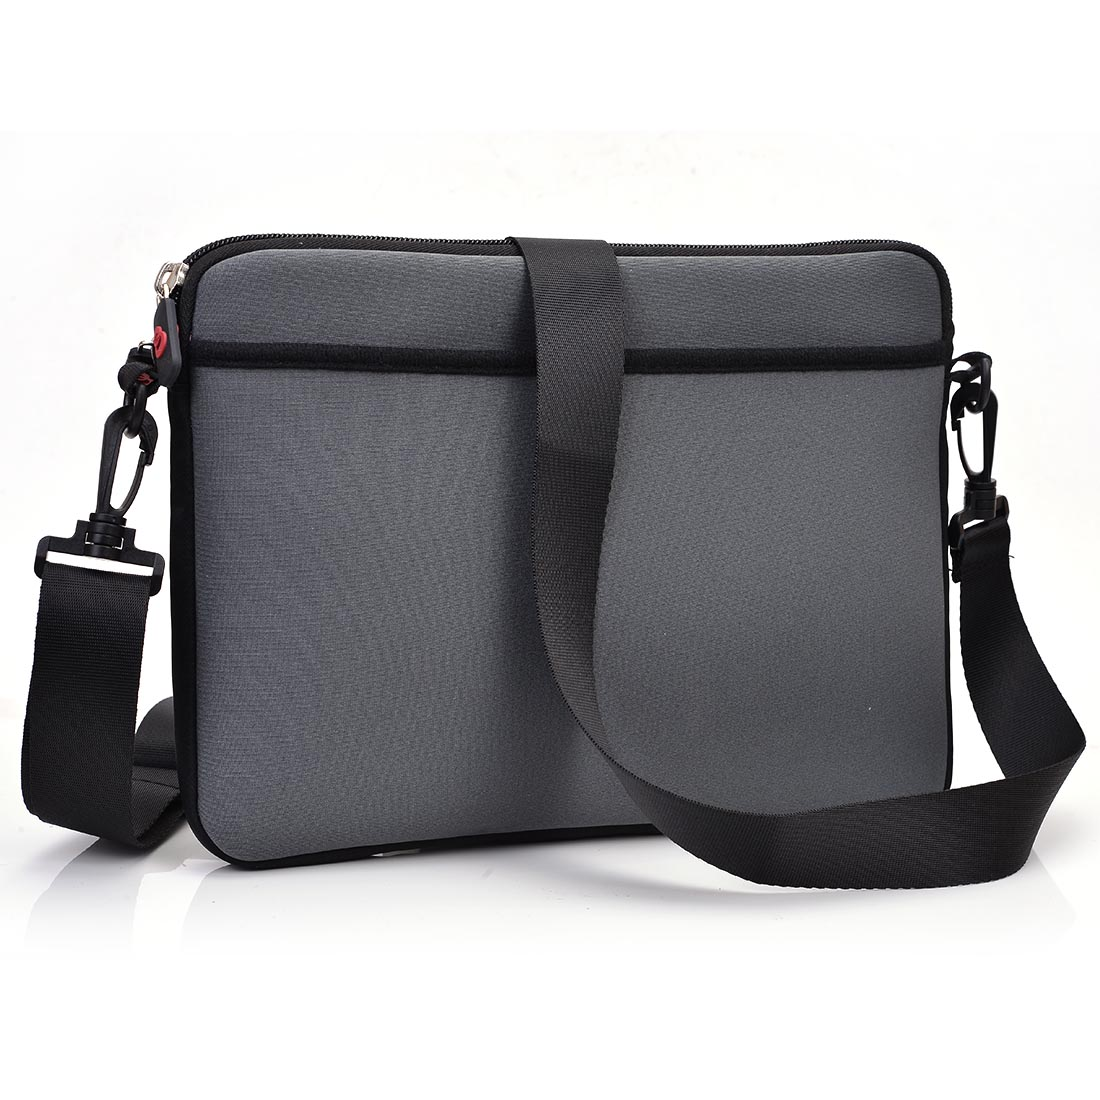 "KroO 11"" Laptops, Netbooks, Chromebooks, Tablets Messenger Style Carrying Bag with Front and Rear Pockets, Includes Removable Shoulder Strap"